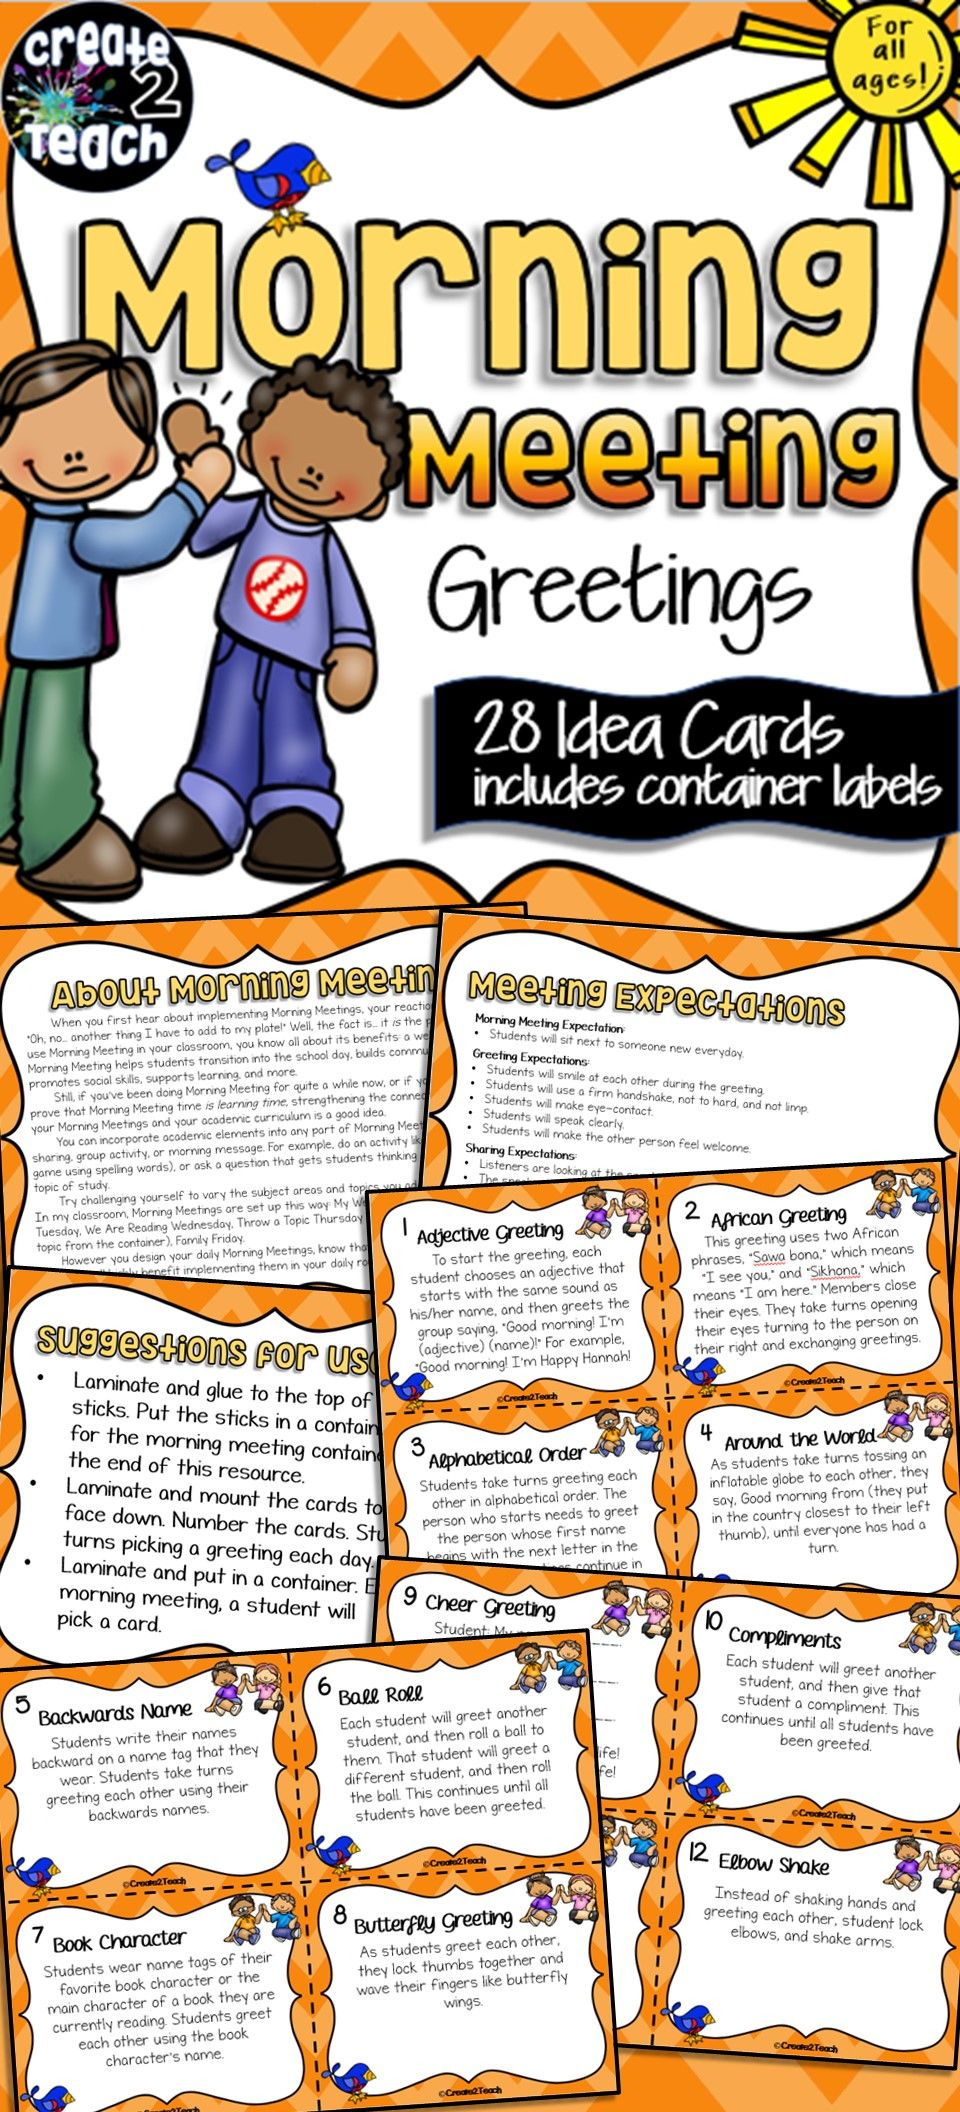 Morning meeting greeting idea cards students learning and morning meeting greeting idea cards kristyandbryce Image collections